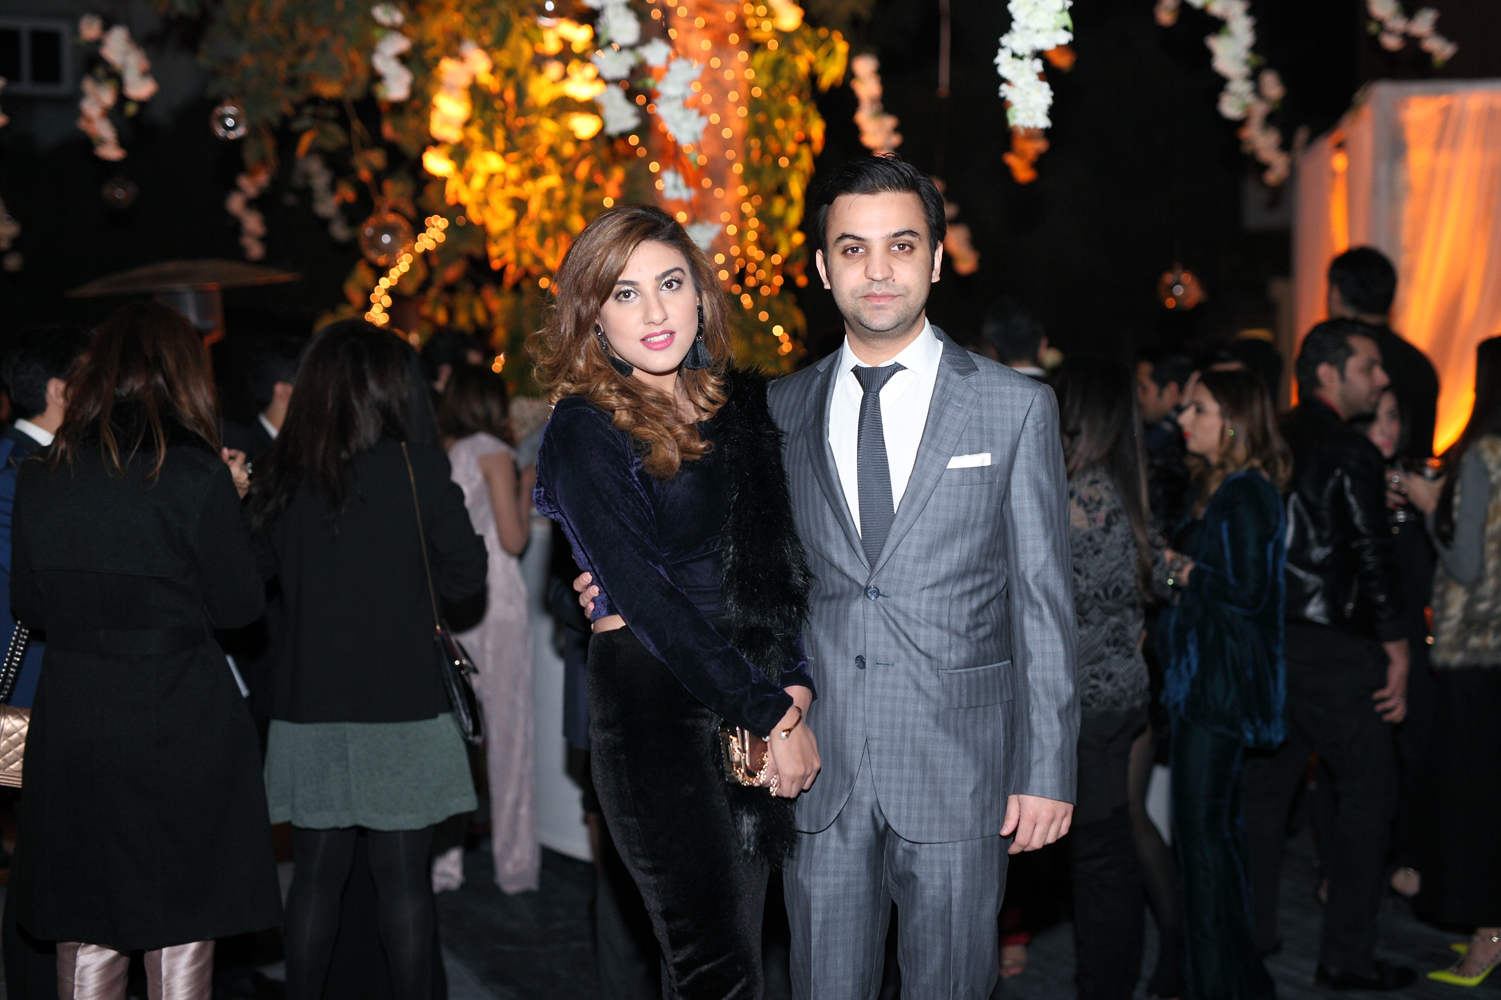 Nimrah Khokhar and Khurram Shafiq